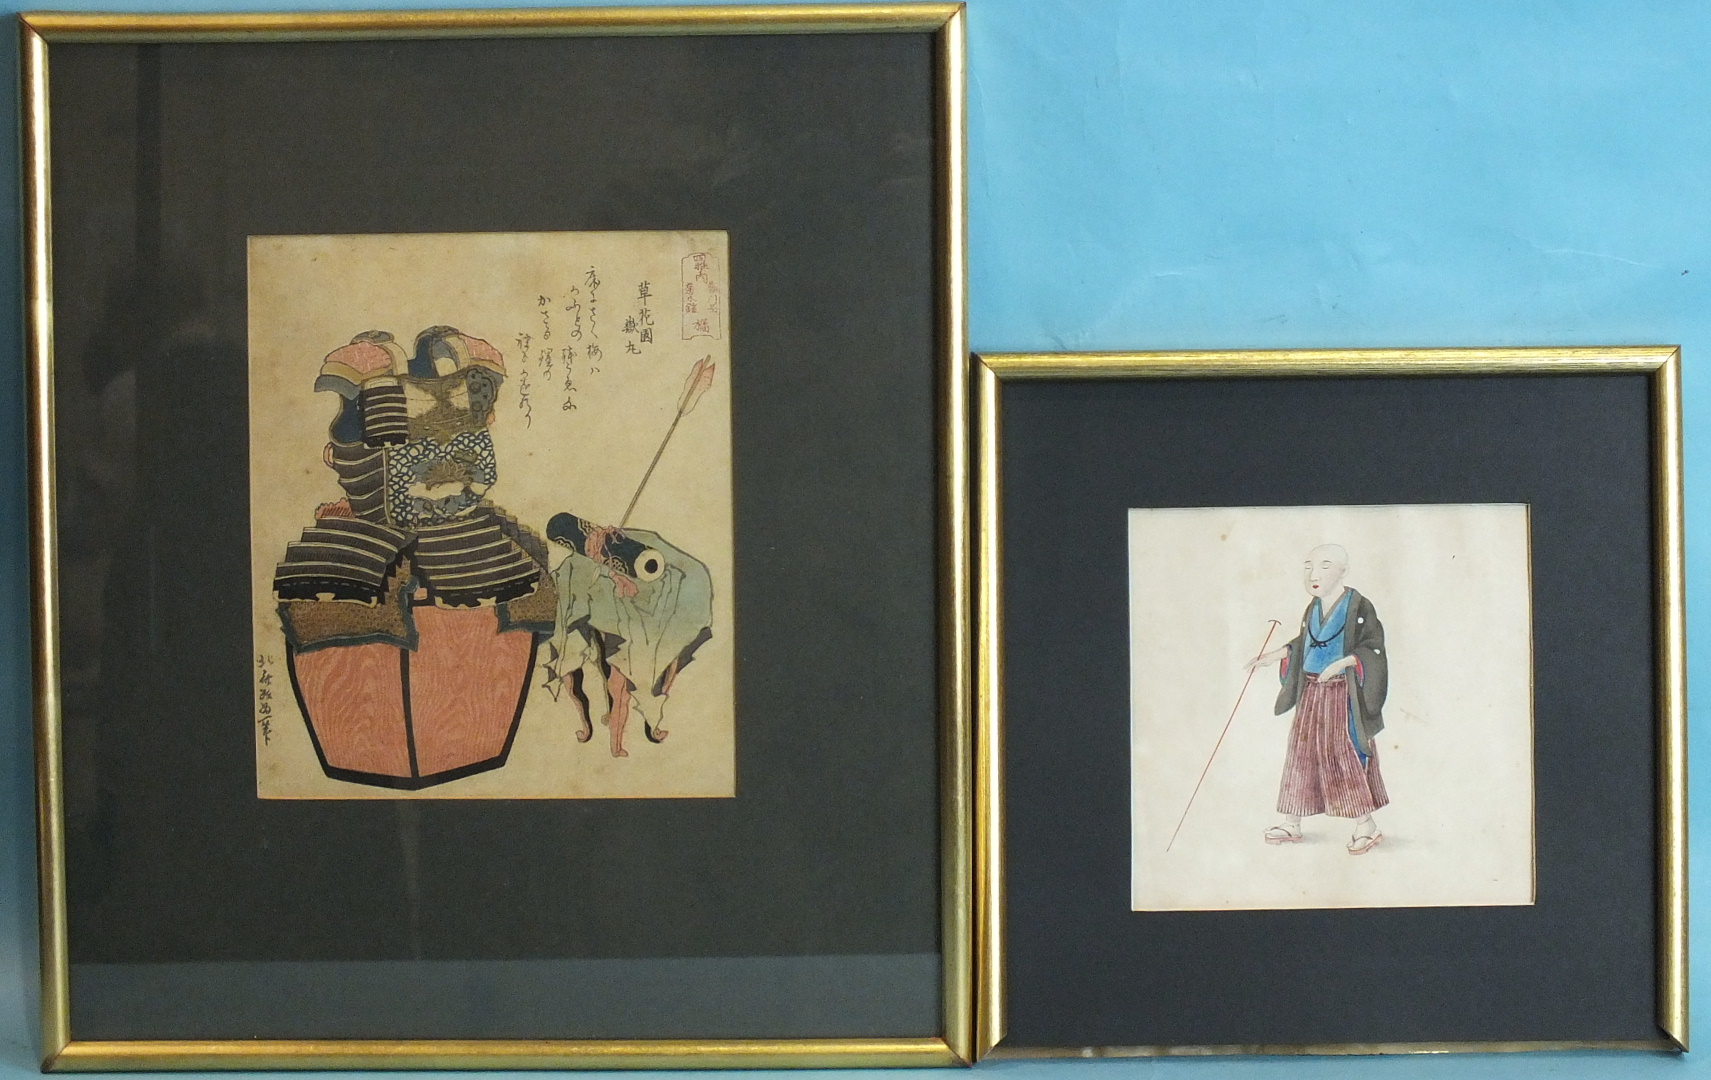 Lot 103 - A late-19th century Japanese watercolour study of a male figure carrying a long pole and wearing